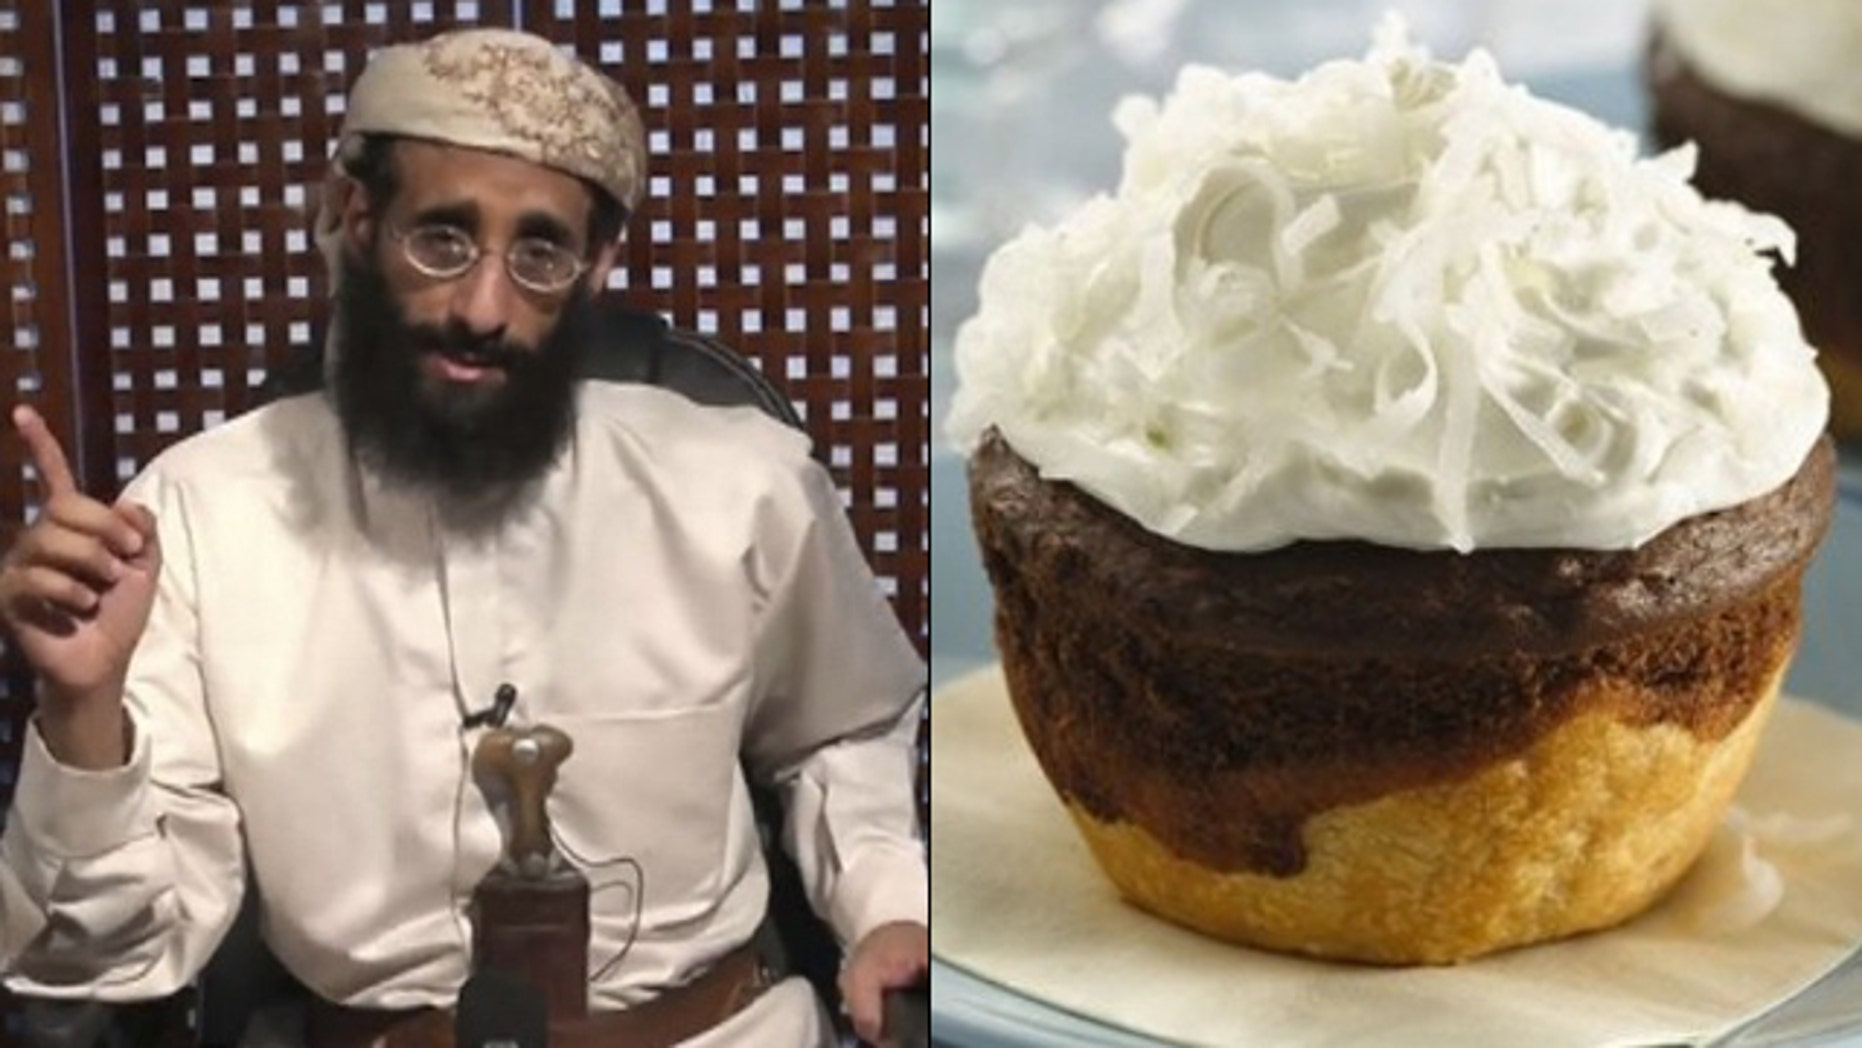 Instead of bomb instructions, radical cleric Anwar al-Awlaki got cupcake recipes.